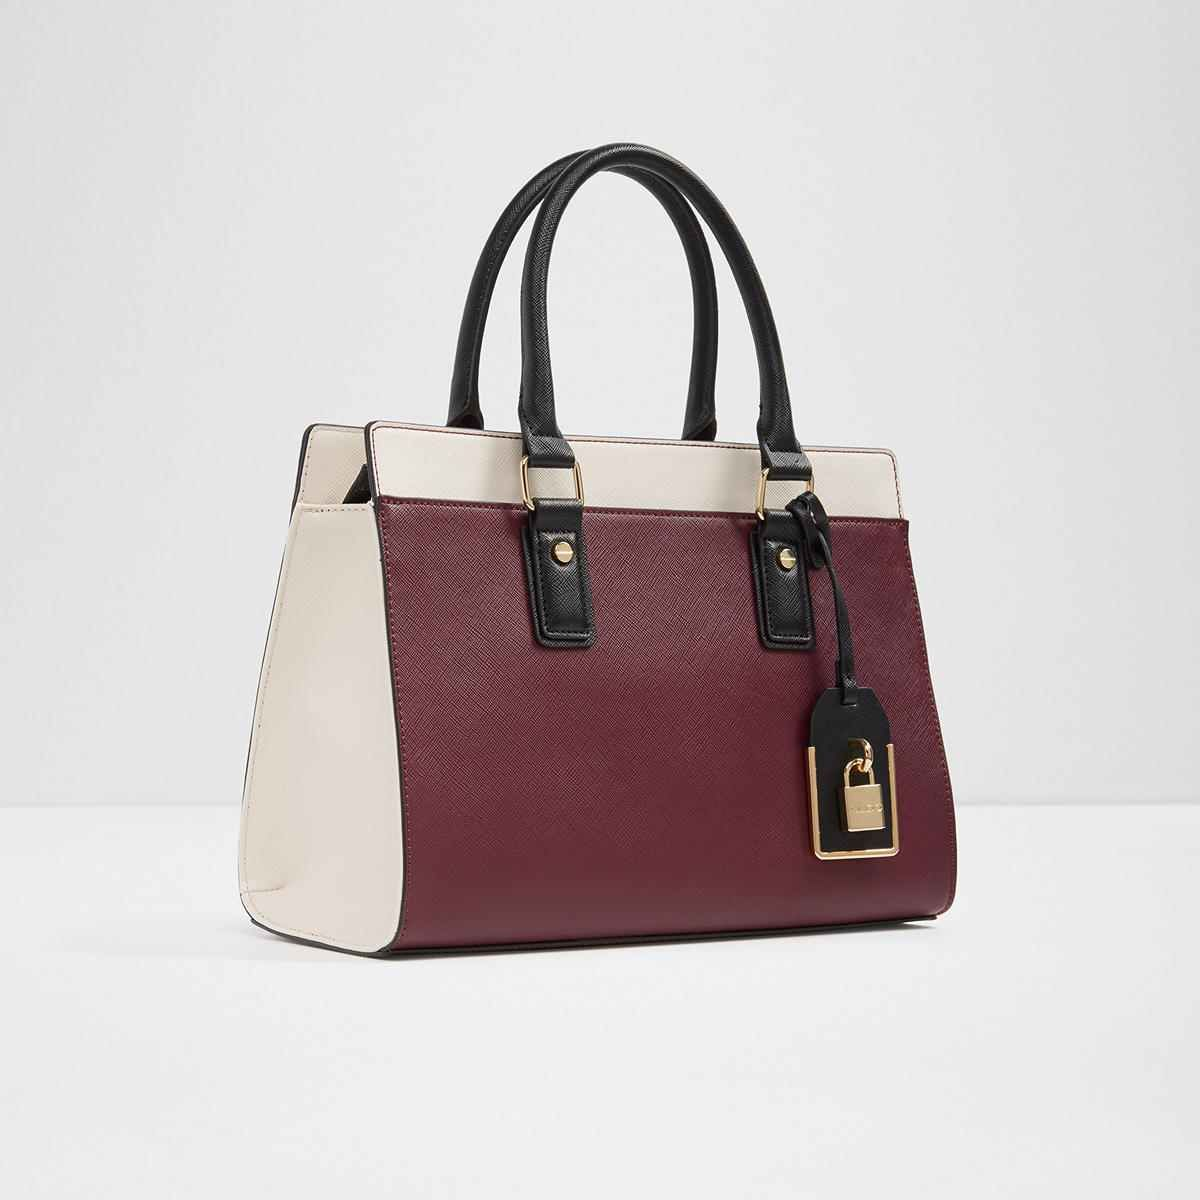 9d74ceaa889 Aldo Uliradia Spacial OFFER You Save   25.00 (42%). Find this Pin and more  on Bags for Women ...